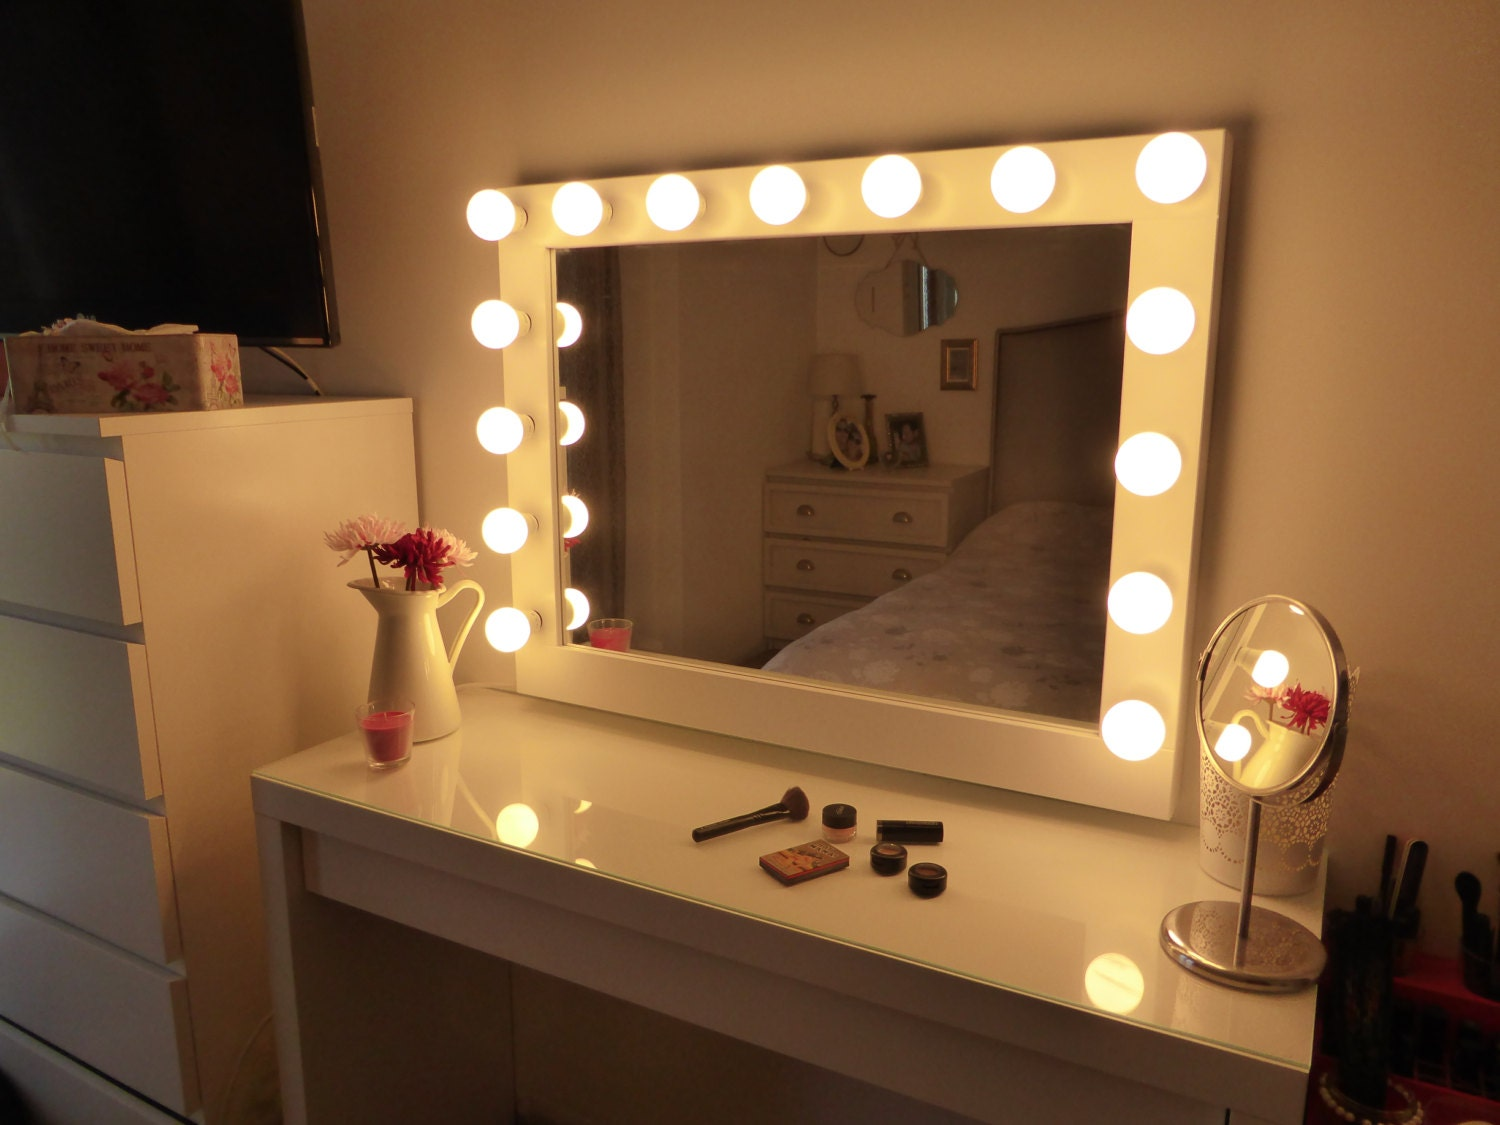 Lights For Makeup Vanity Mirror : Hollywood lighted vanity mirror-large makeup mirror with